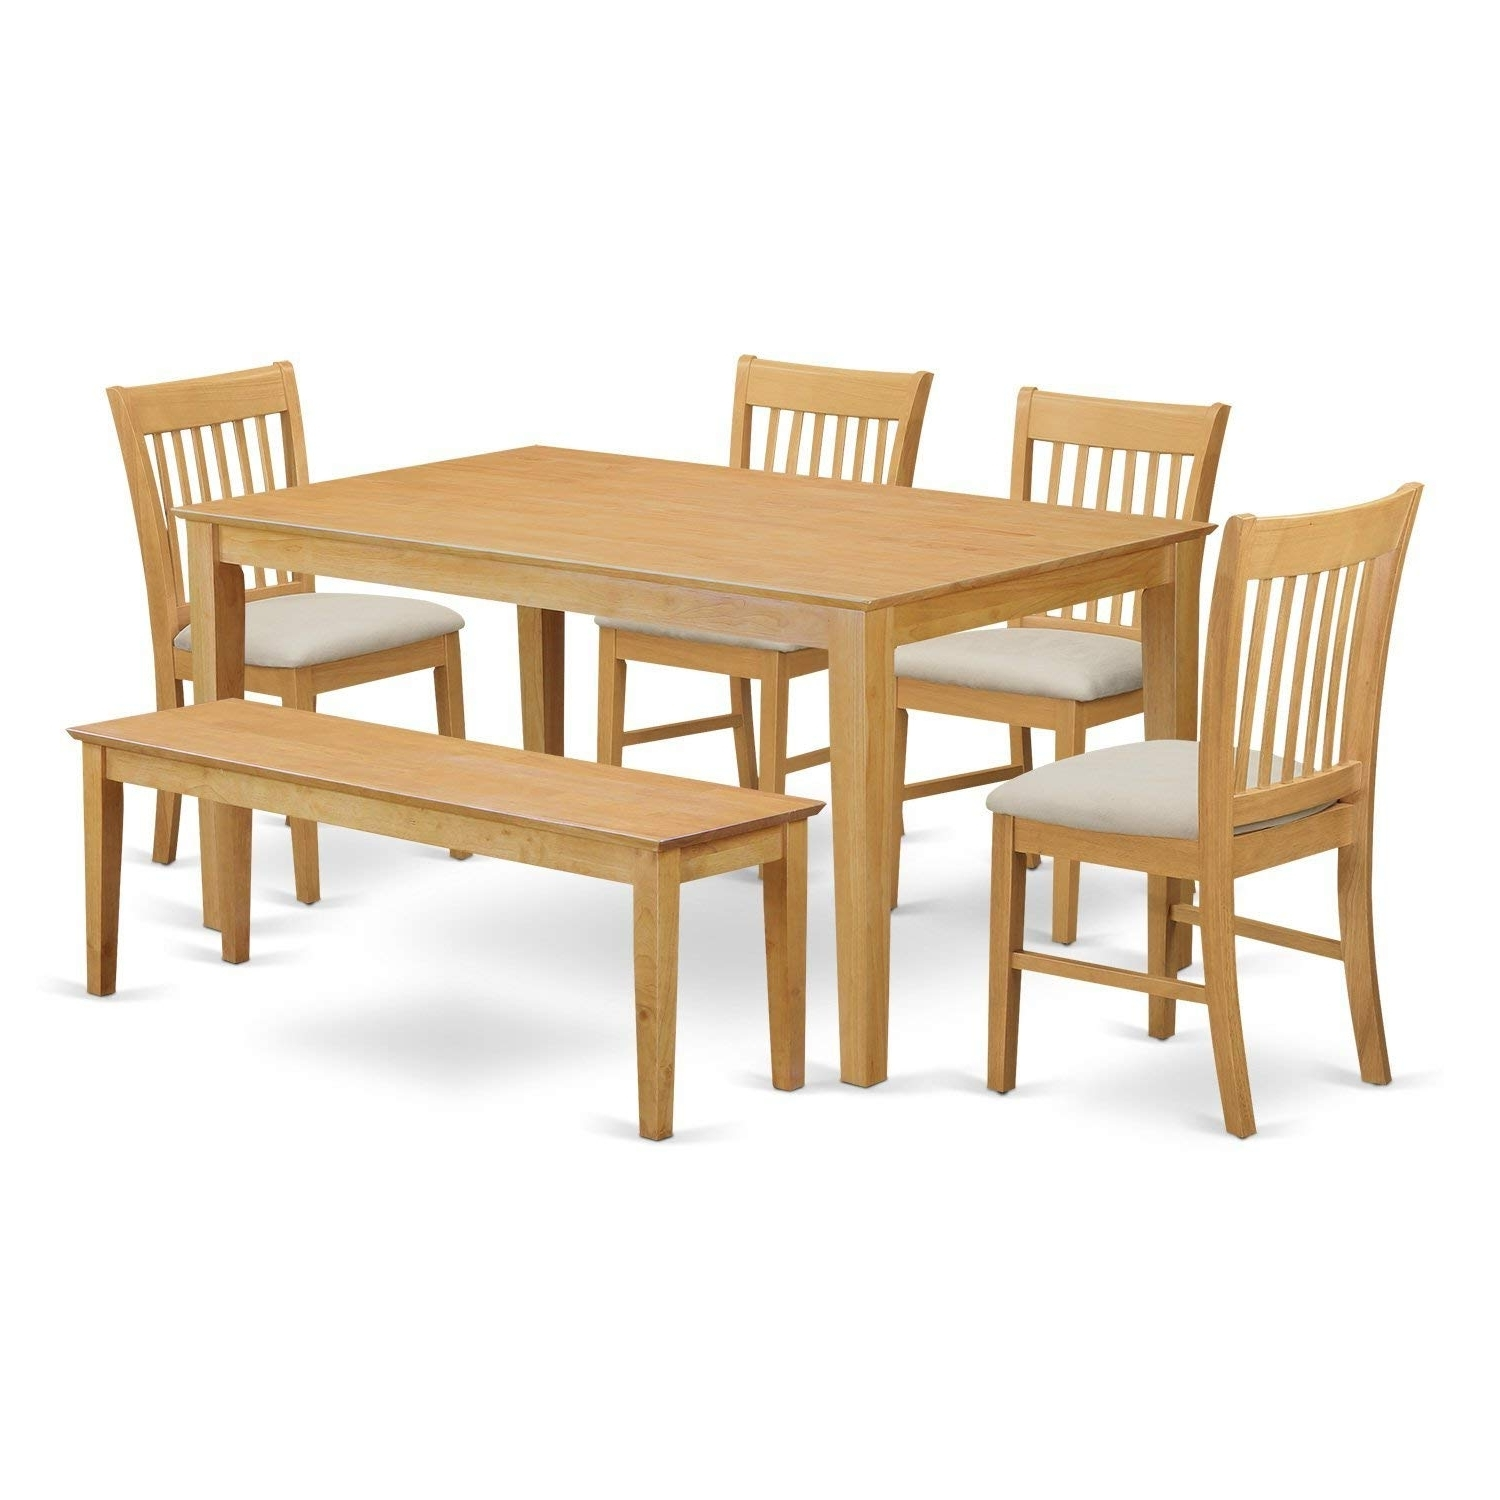 Craftsman 7 Piece Rectangle Extension Dining Sets With Side Chairs With Most Recently Released Amazon: East West Furniture Cano6 Oak W 6 Piece Dining Table Set (View 16 of 25)